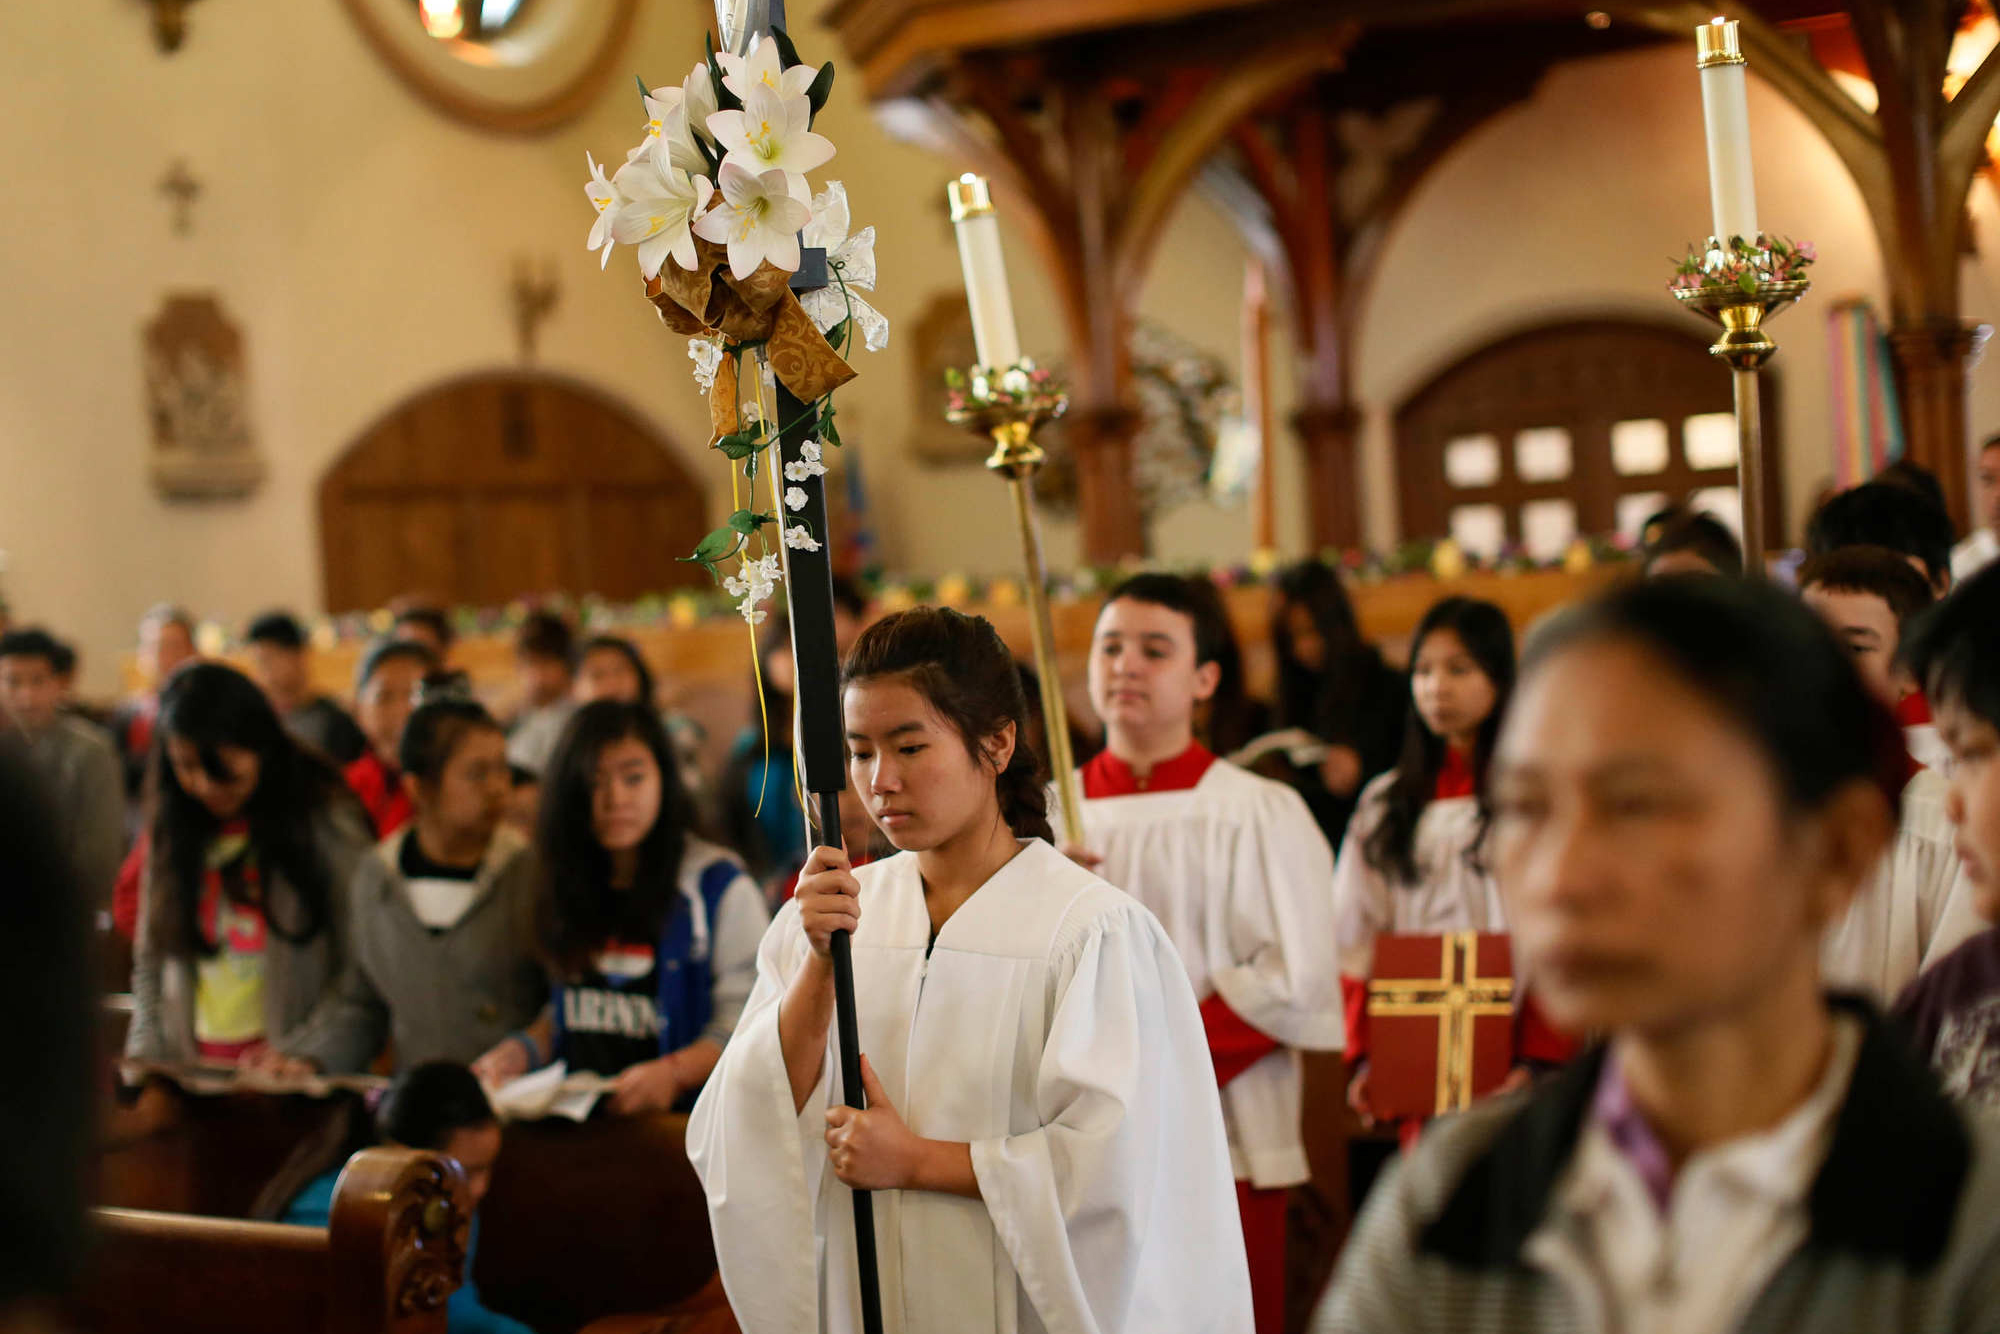 Beh Meh carries the cross to lead the processional at the start of Mass at Our Lady of Hope, April 19, 2015. (Derek Gee/Buffalo News)